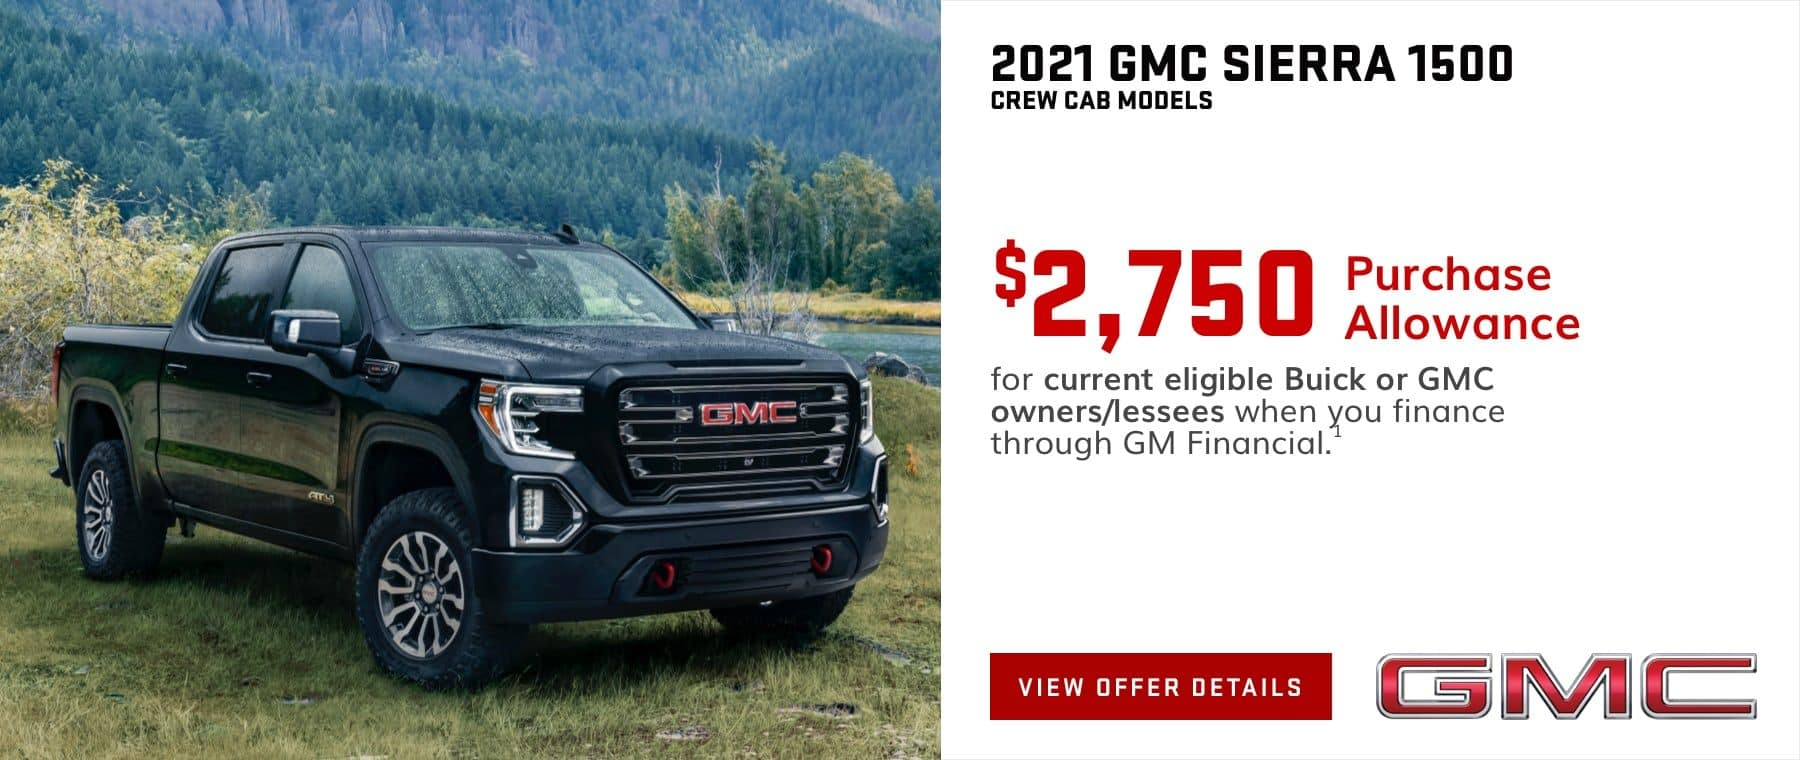 $2,750 Purchase Allowance for current eligible Buick or GMC owners/lessees when you finance through GM Financial.1